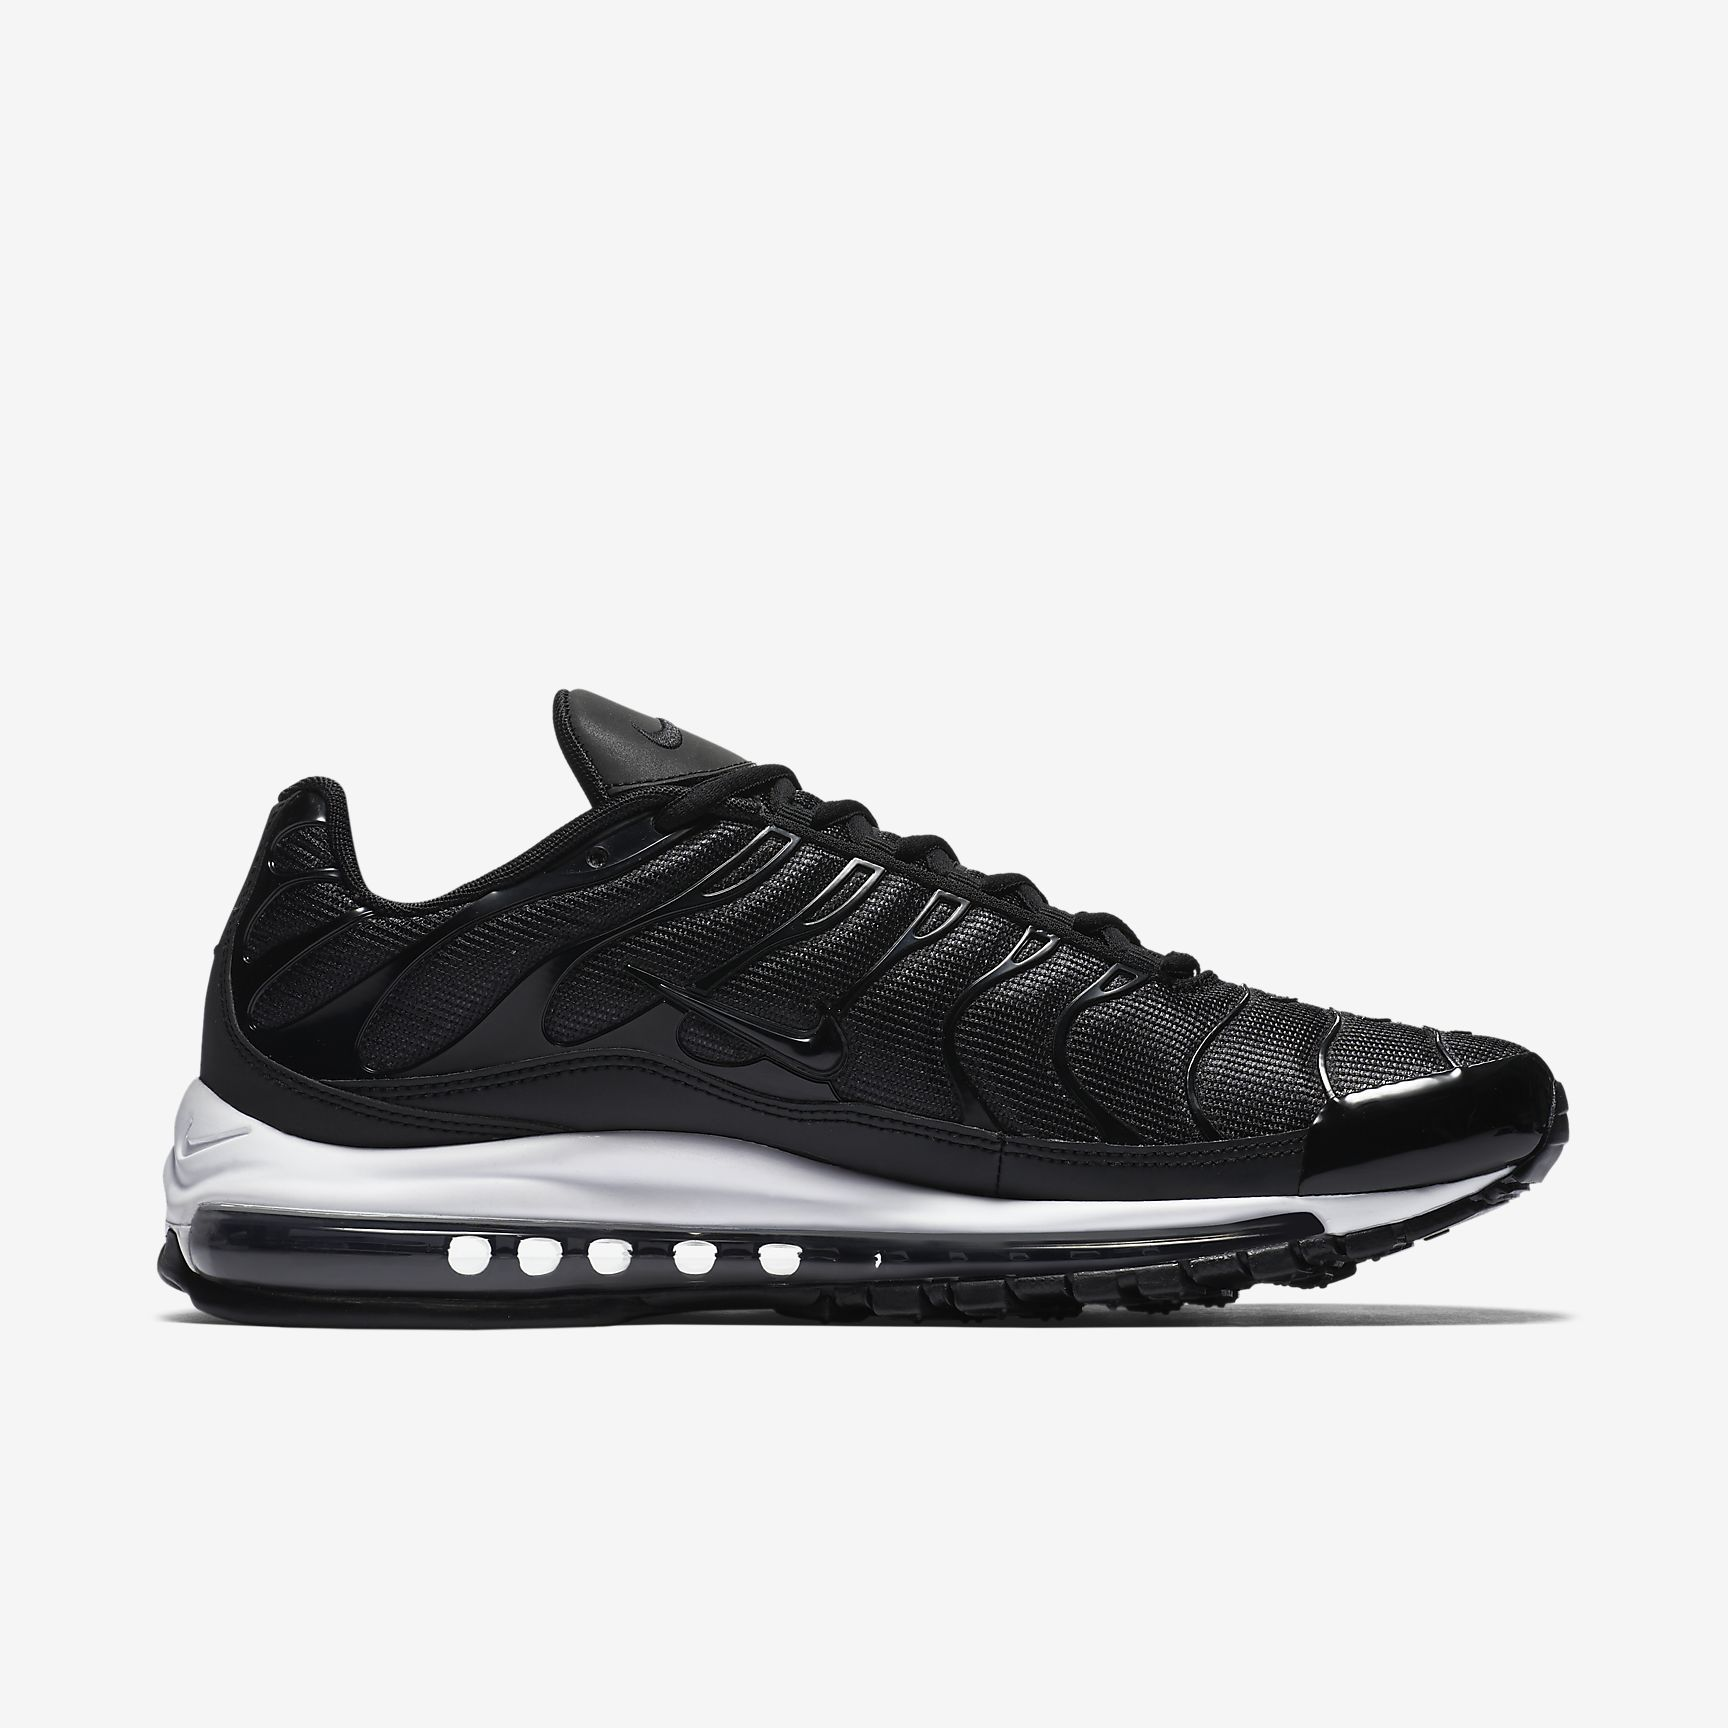 new product ca98a 75f89 ... spain nike air max 97 plus schwarz weiß anthrazit ah8144 001 682a2 9aaaf